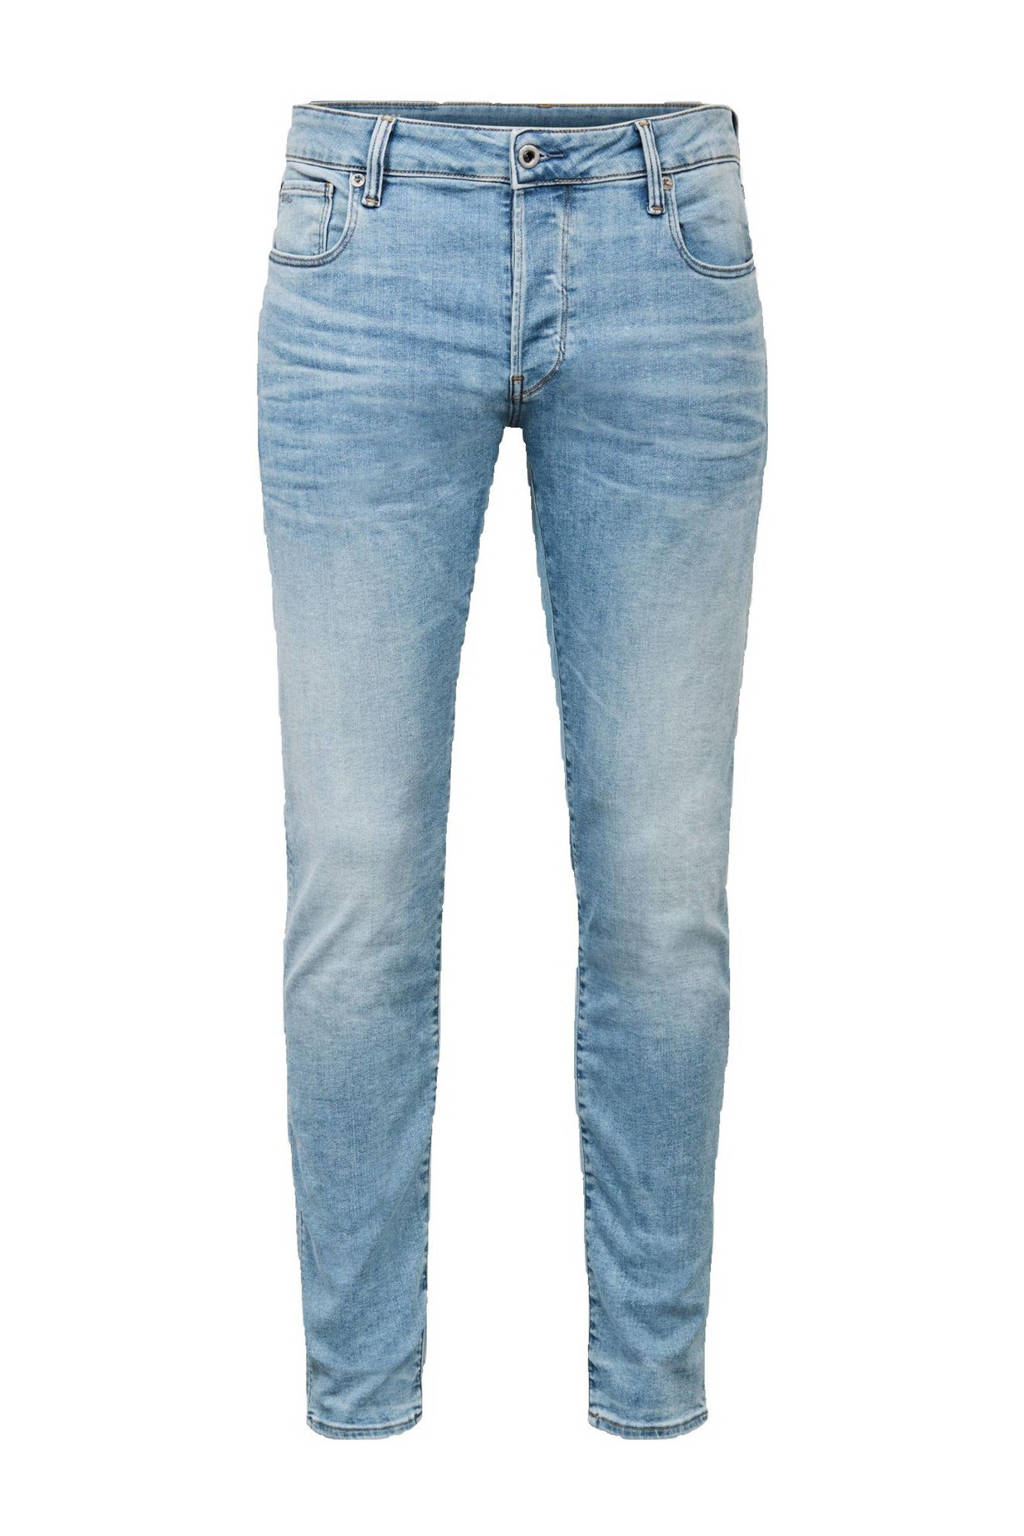 G-Star RAW straight fit jeans 3301, Light denim